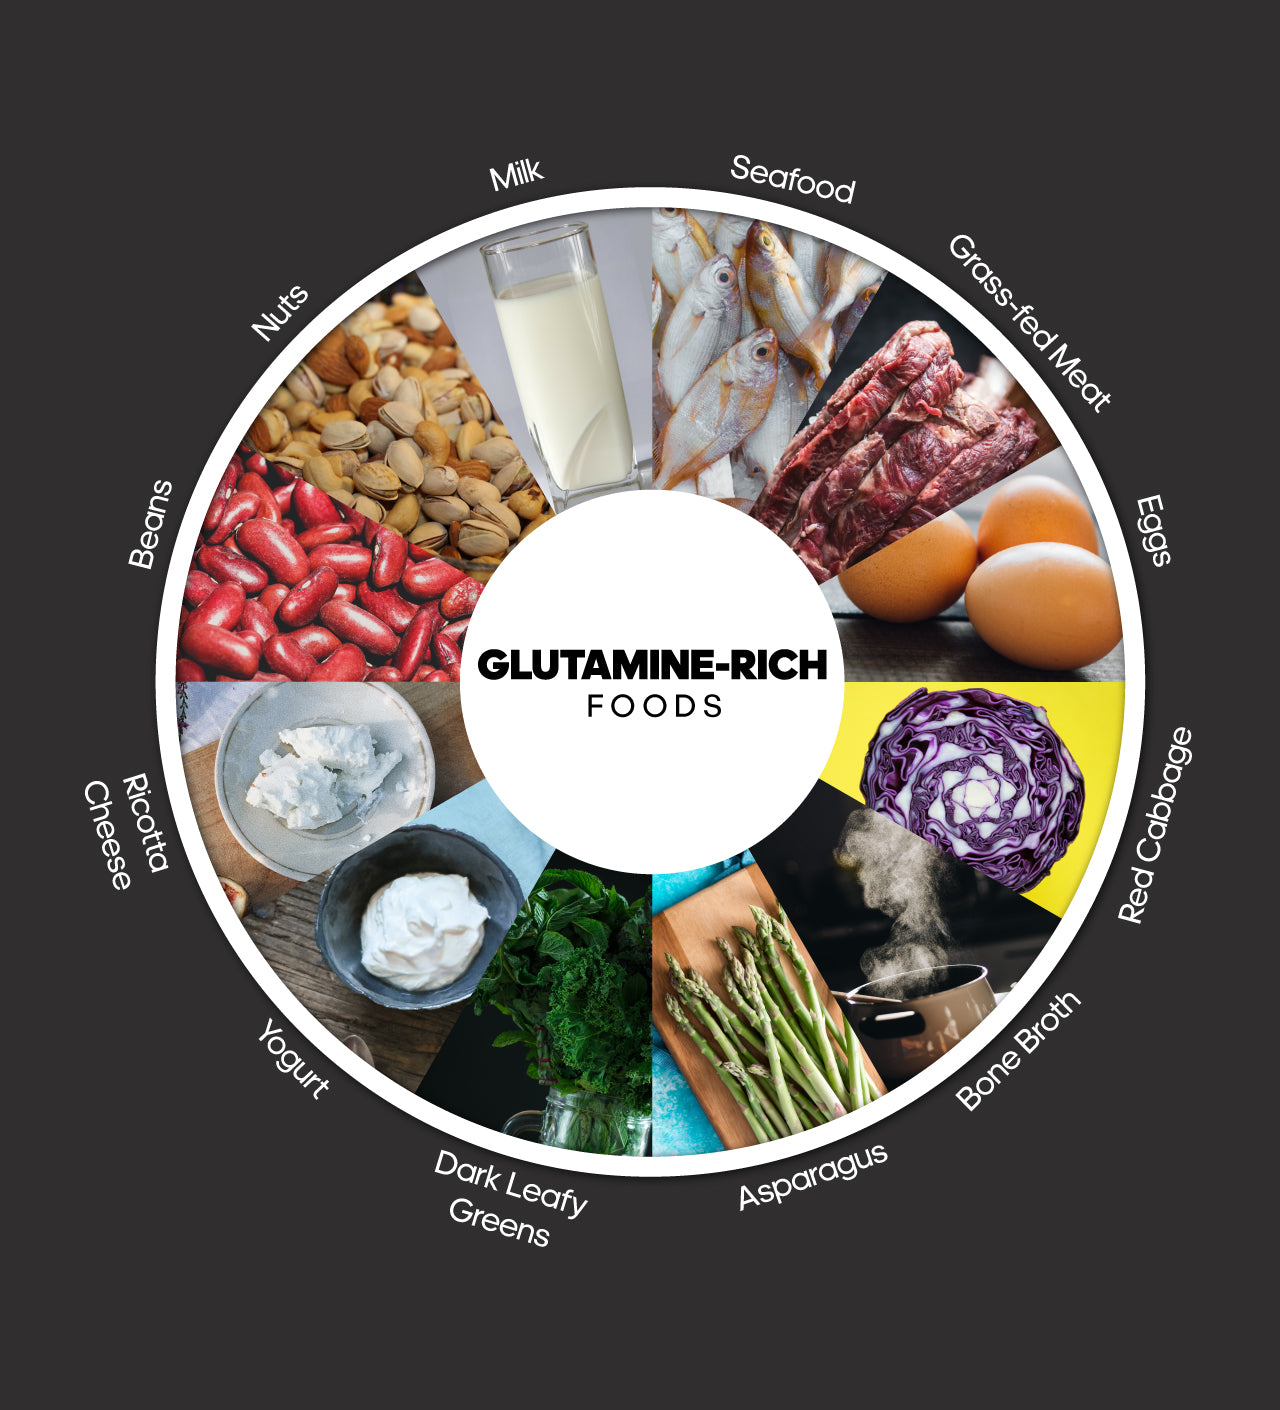 Foods rich in glutamine